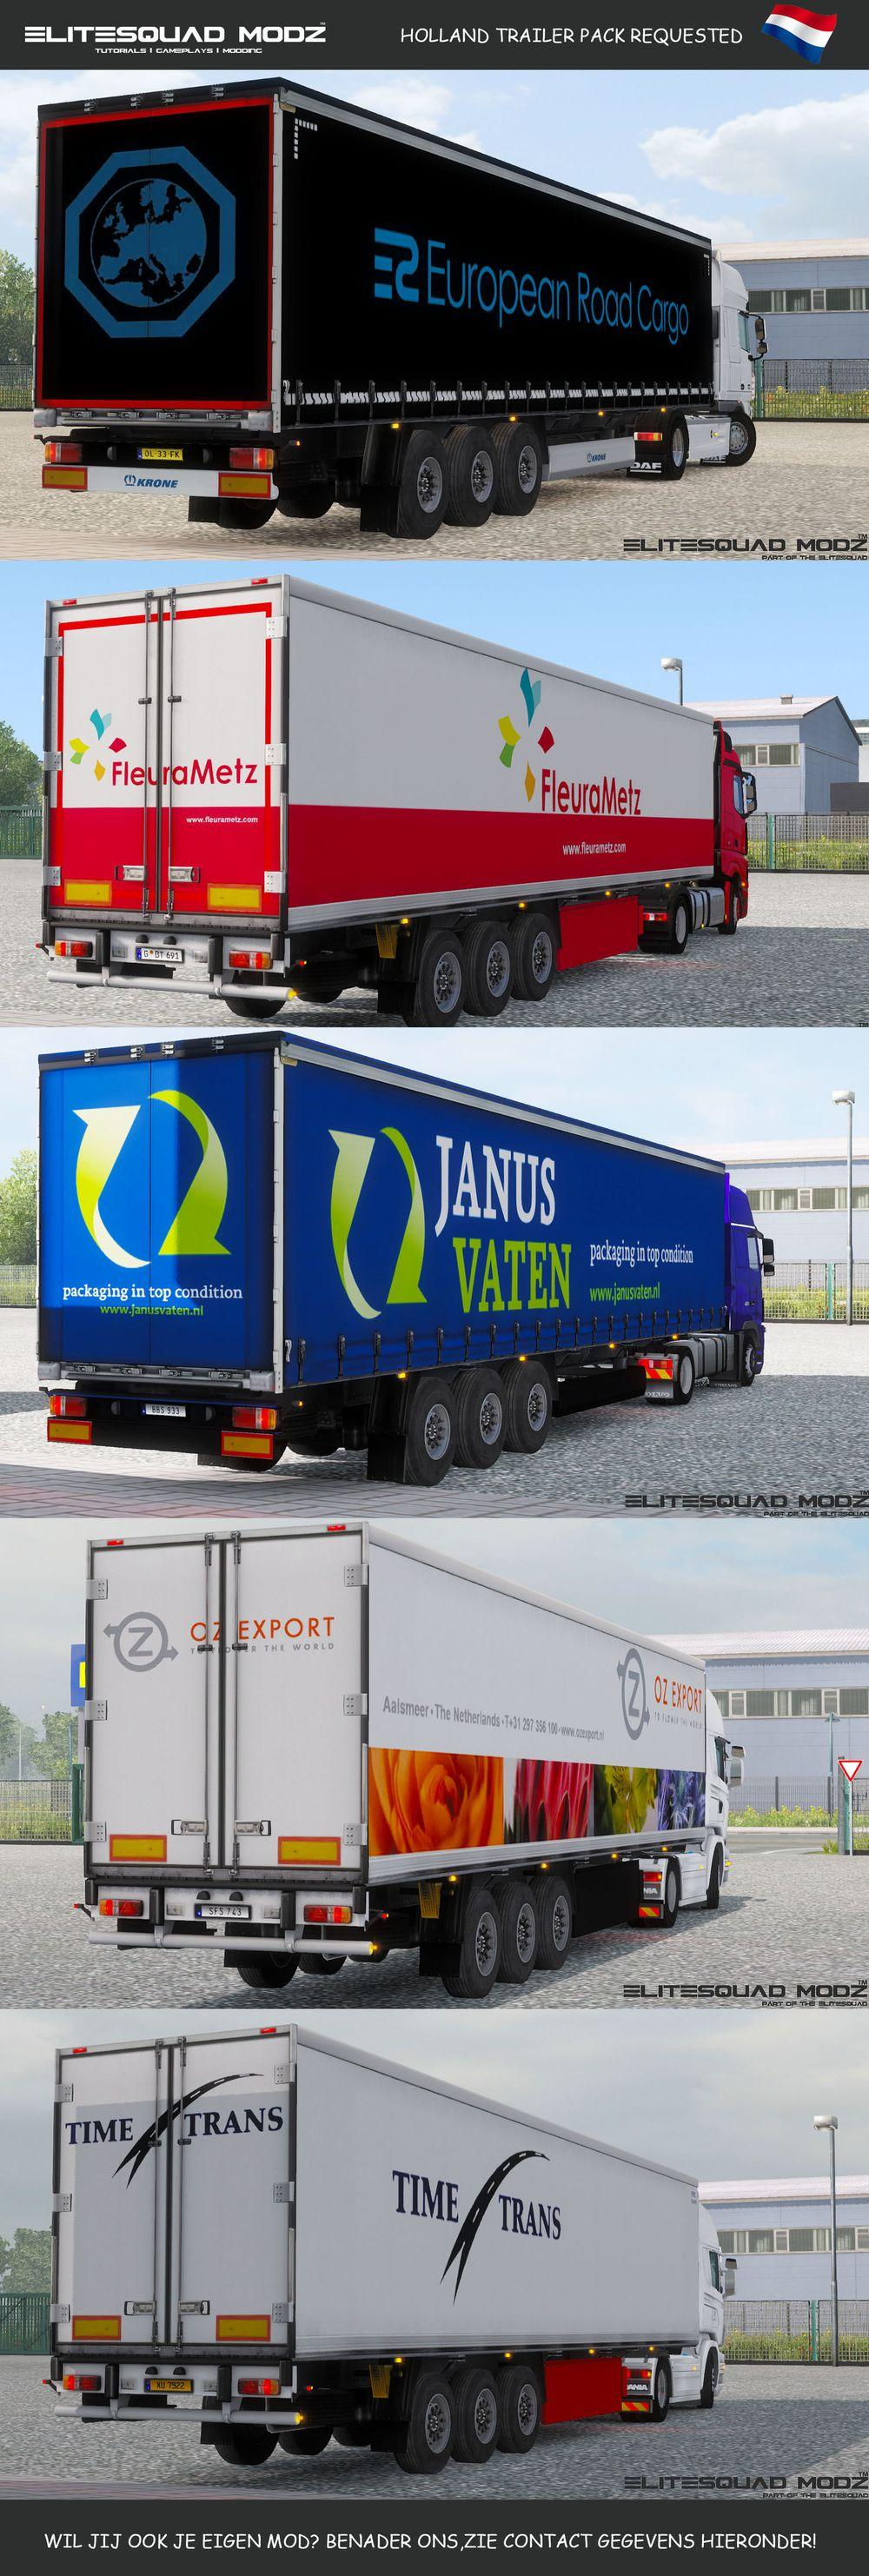 holland-trailers-pack-requested-by-elitesquad-modz_2